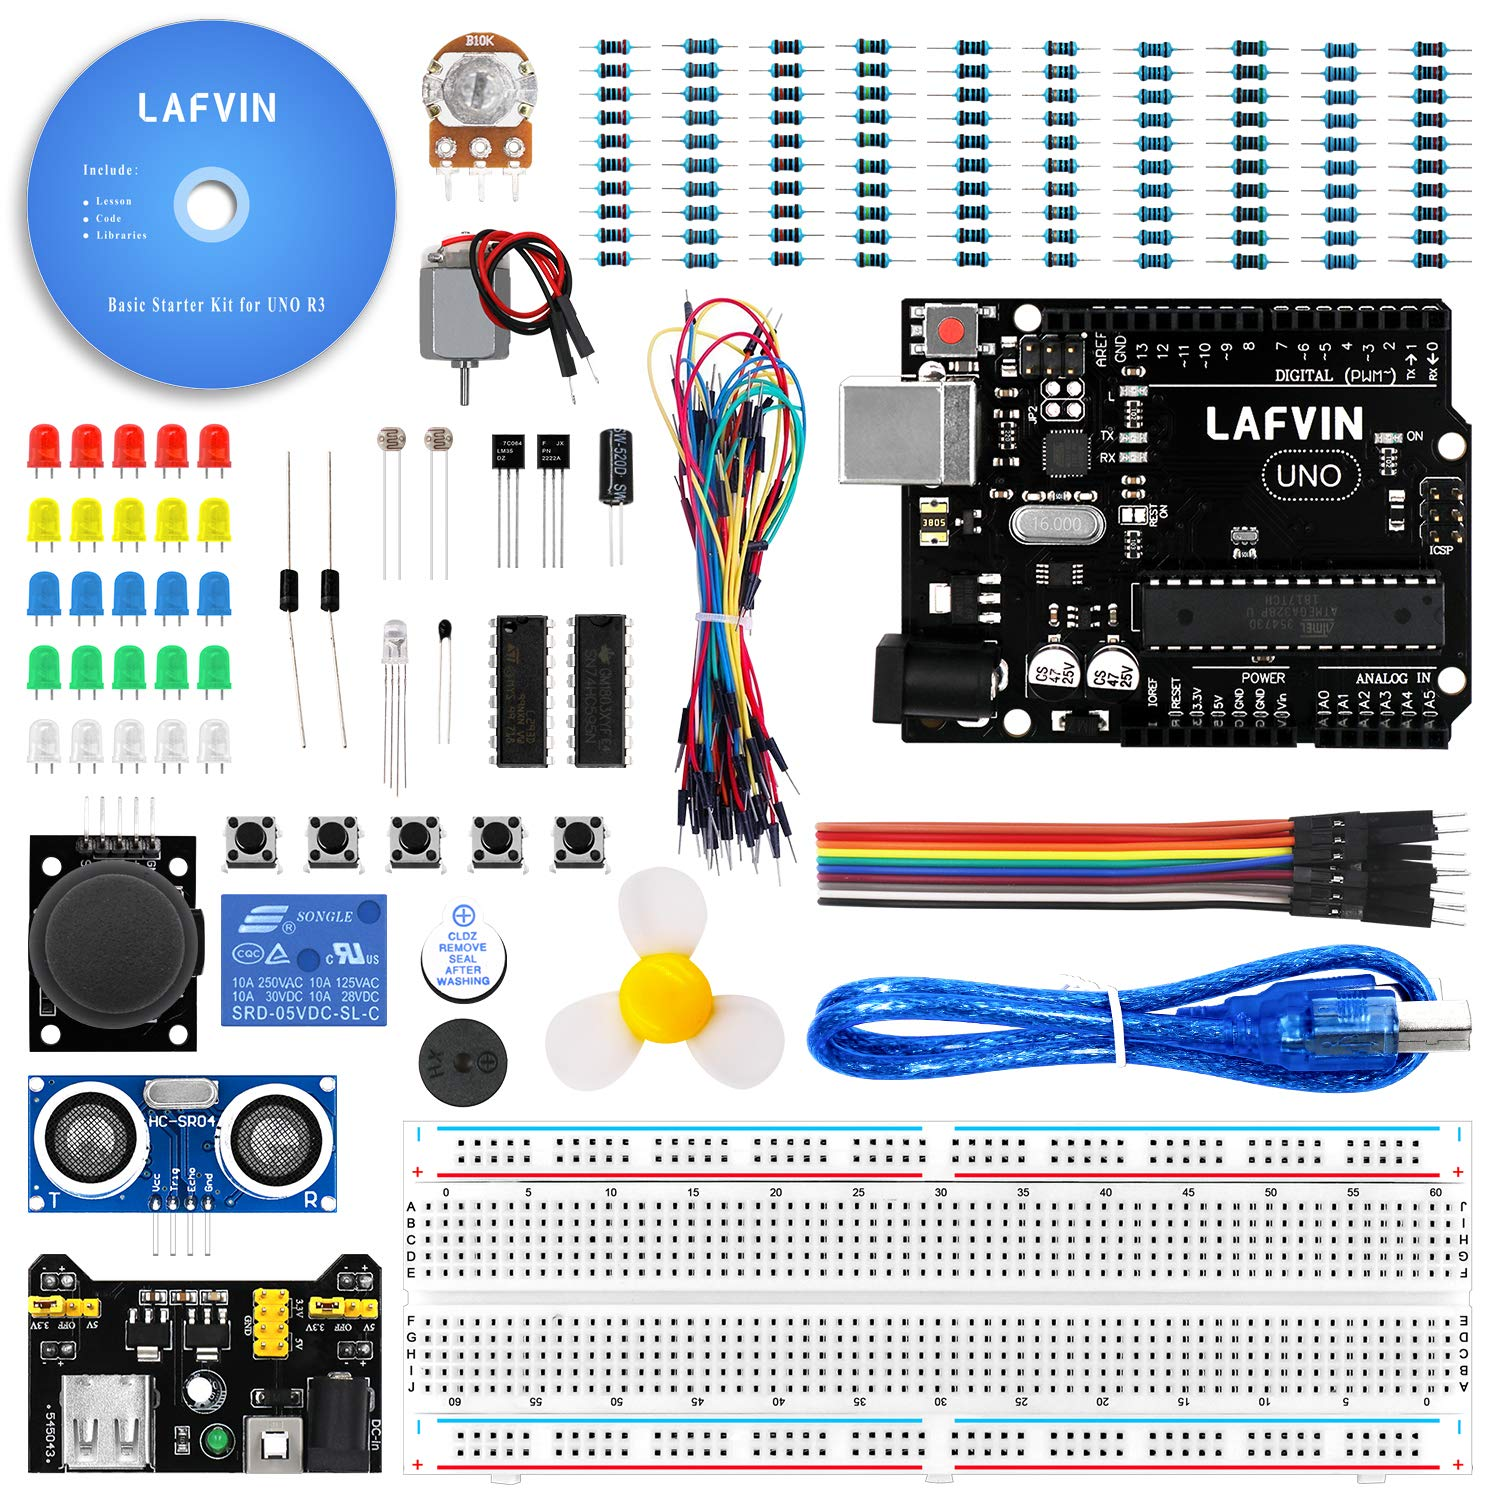 Lafvin The Basic Starter Kit For Arduino With Uno R3 Tutorial Lesson 3 Breadboards And Leds Breadboard Led Resistorjumper Wires Power Supply Computers Accessories